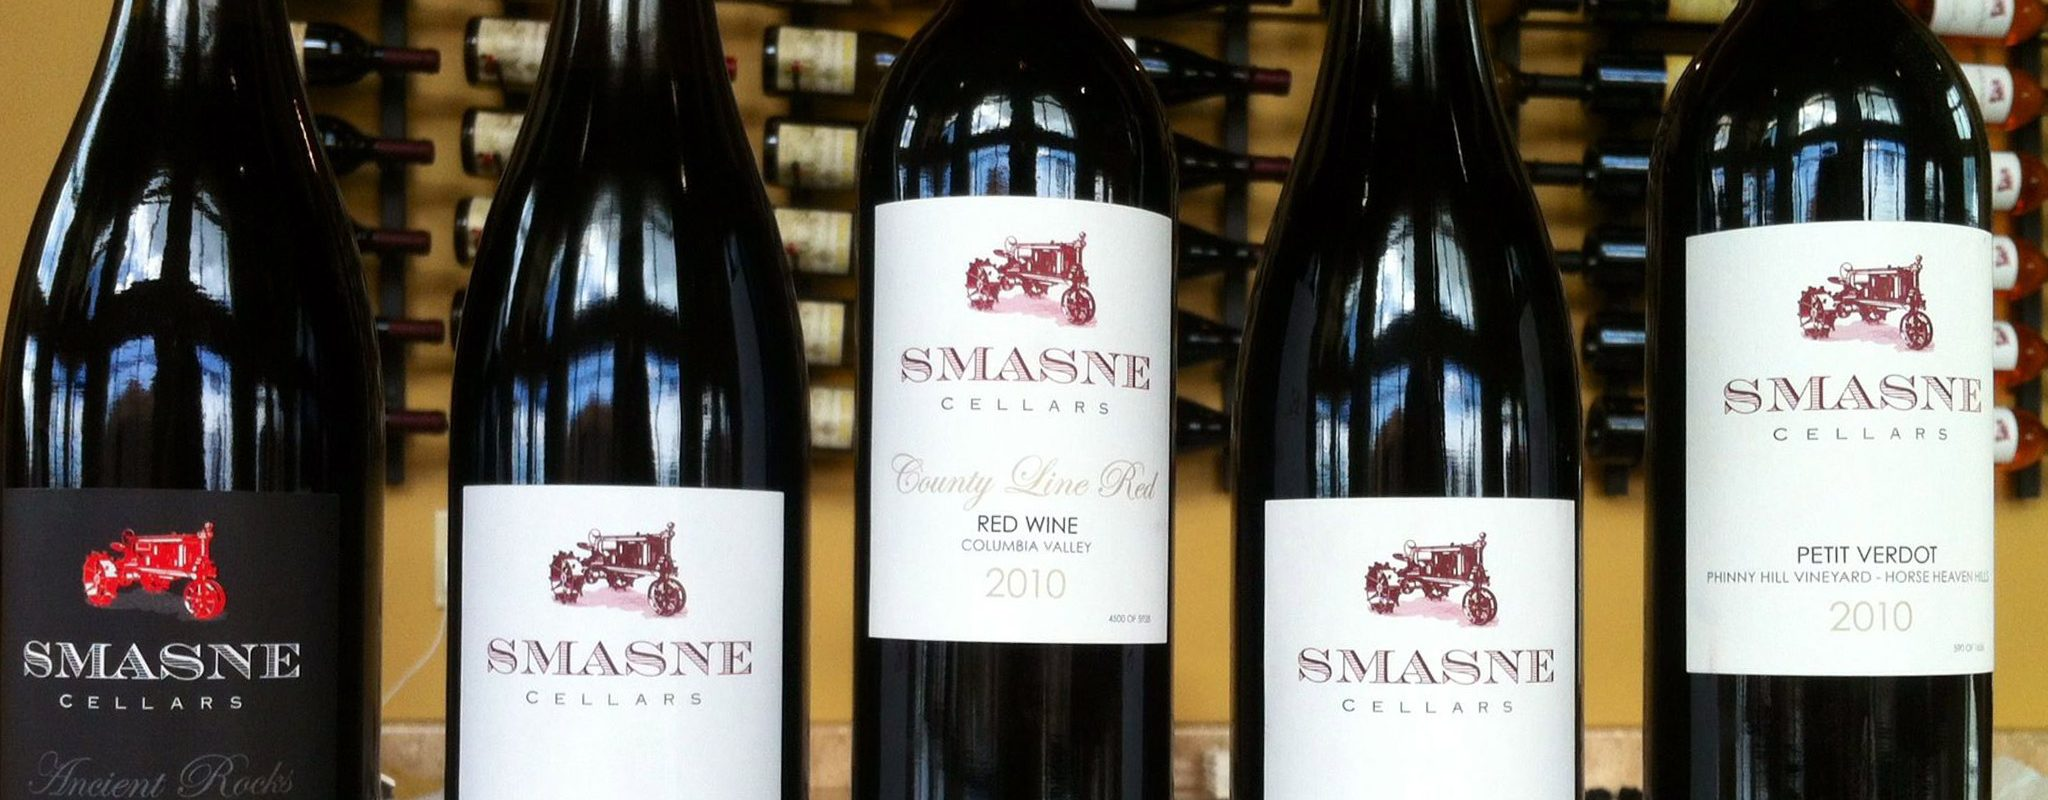 Smasne Cellars near Lodge at Columbia Point